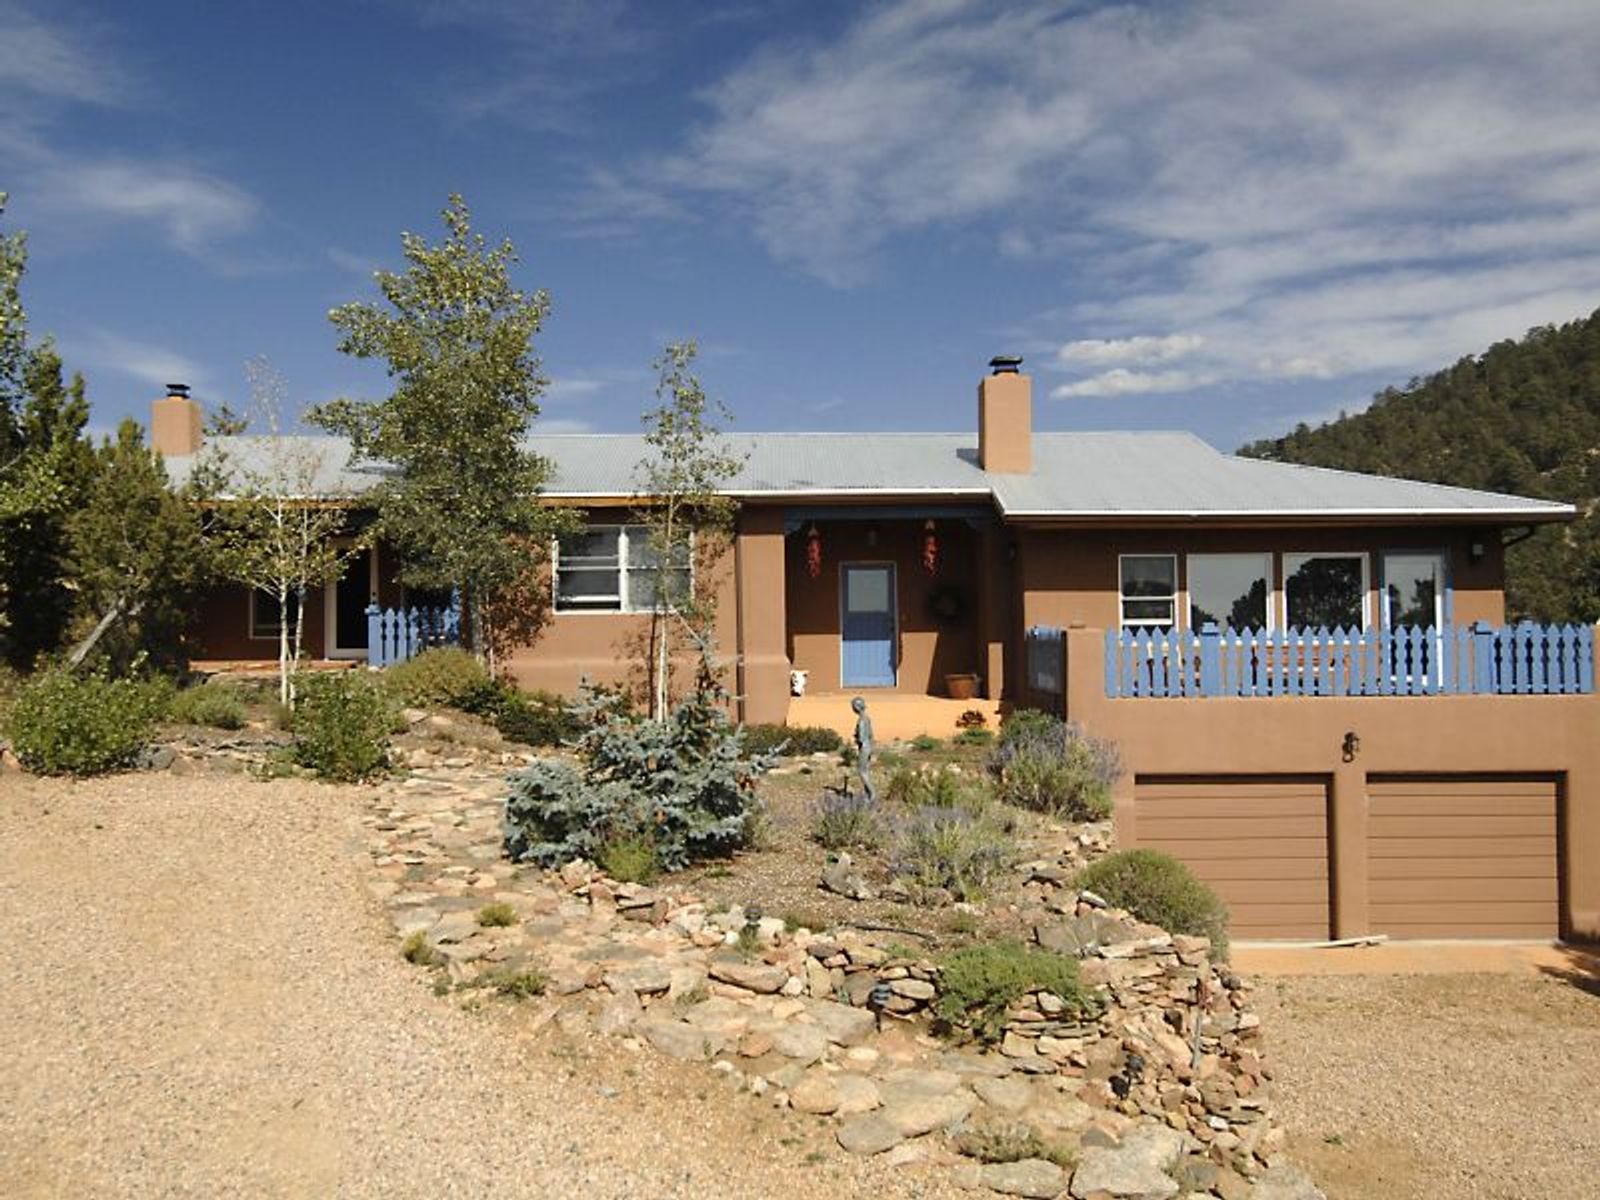 81-B La Barbaria Road, Santa Fe NM Single Family Home - Santa Fe Real Estate